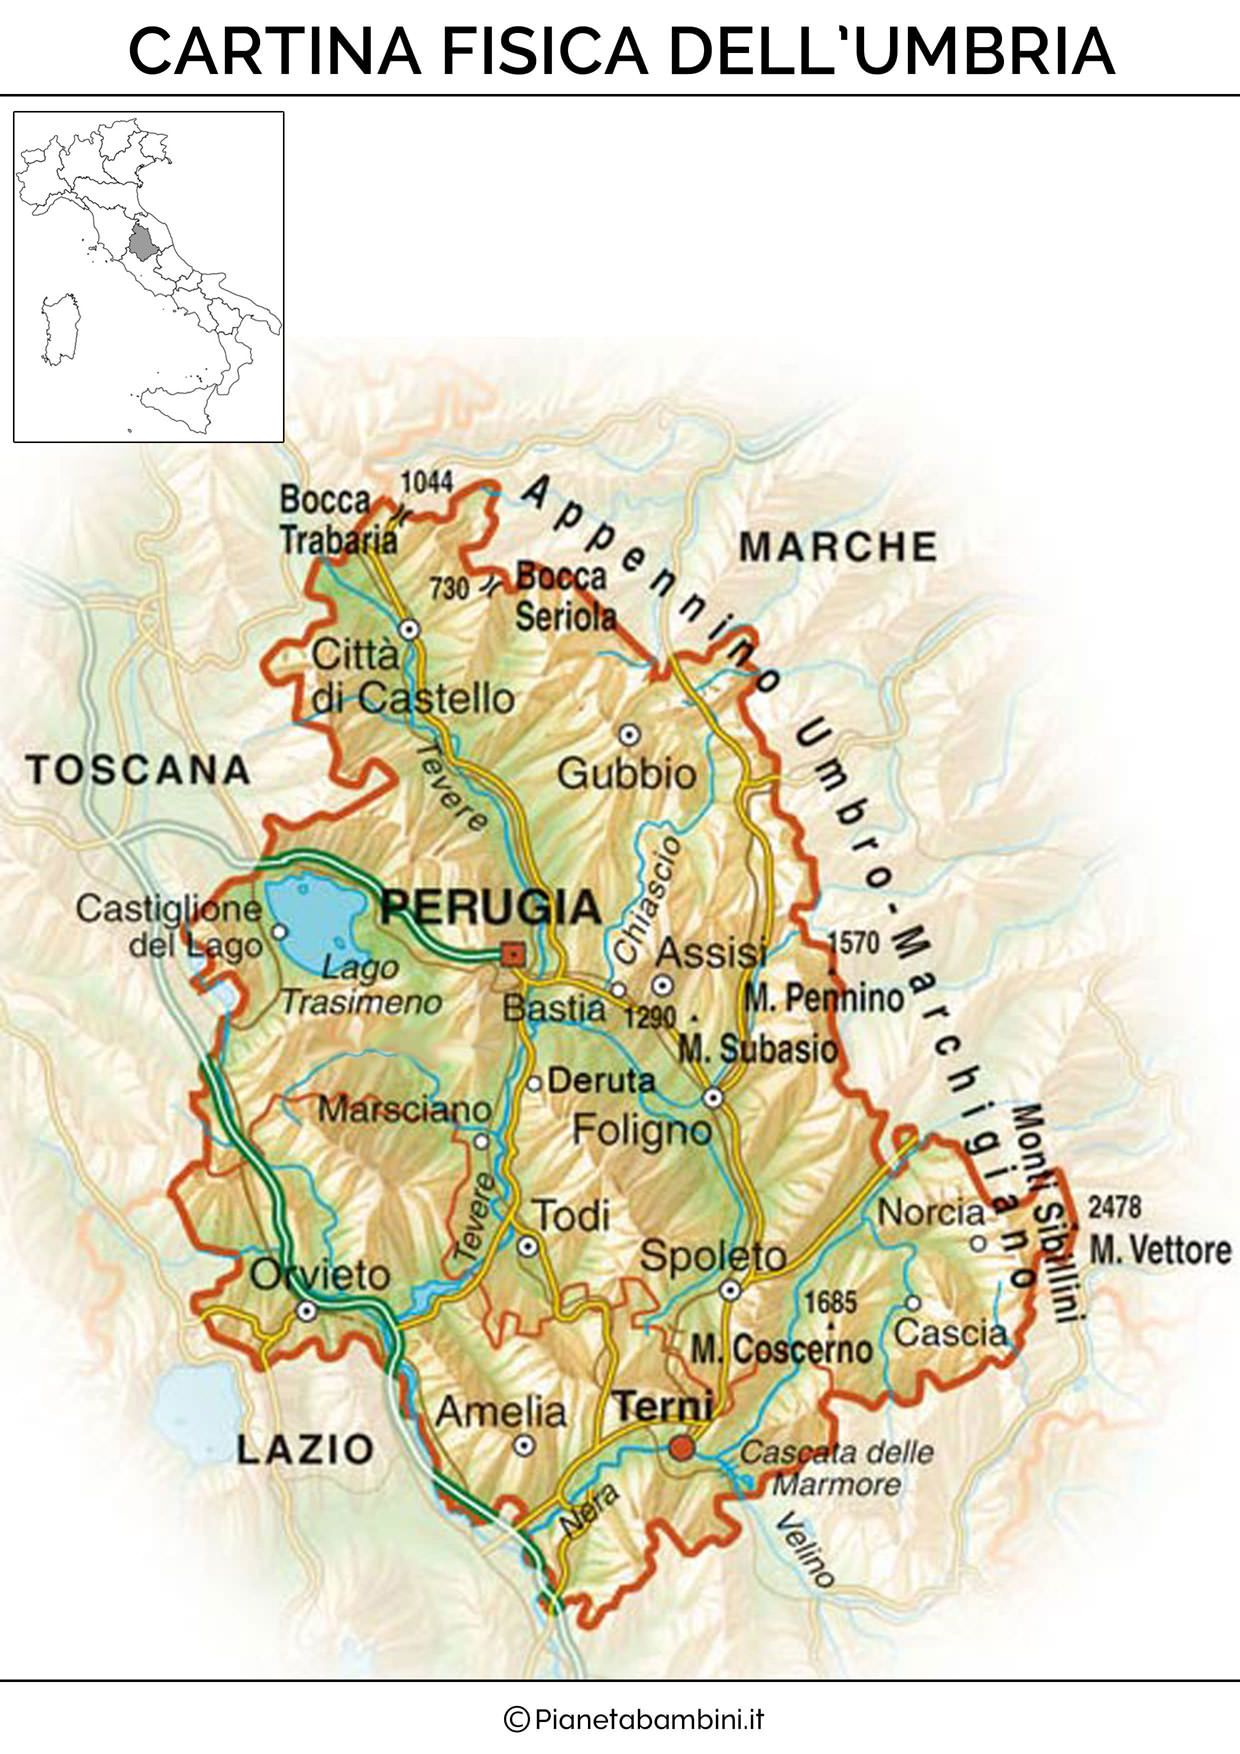 Cartina Geografica Muta Dell Inghilterra.Cartina Muta Fisica E Politica Dell Umbria Da Stampare Mappe Illustrate Umbria Mappe